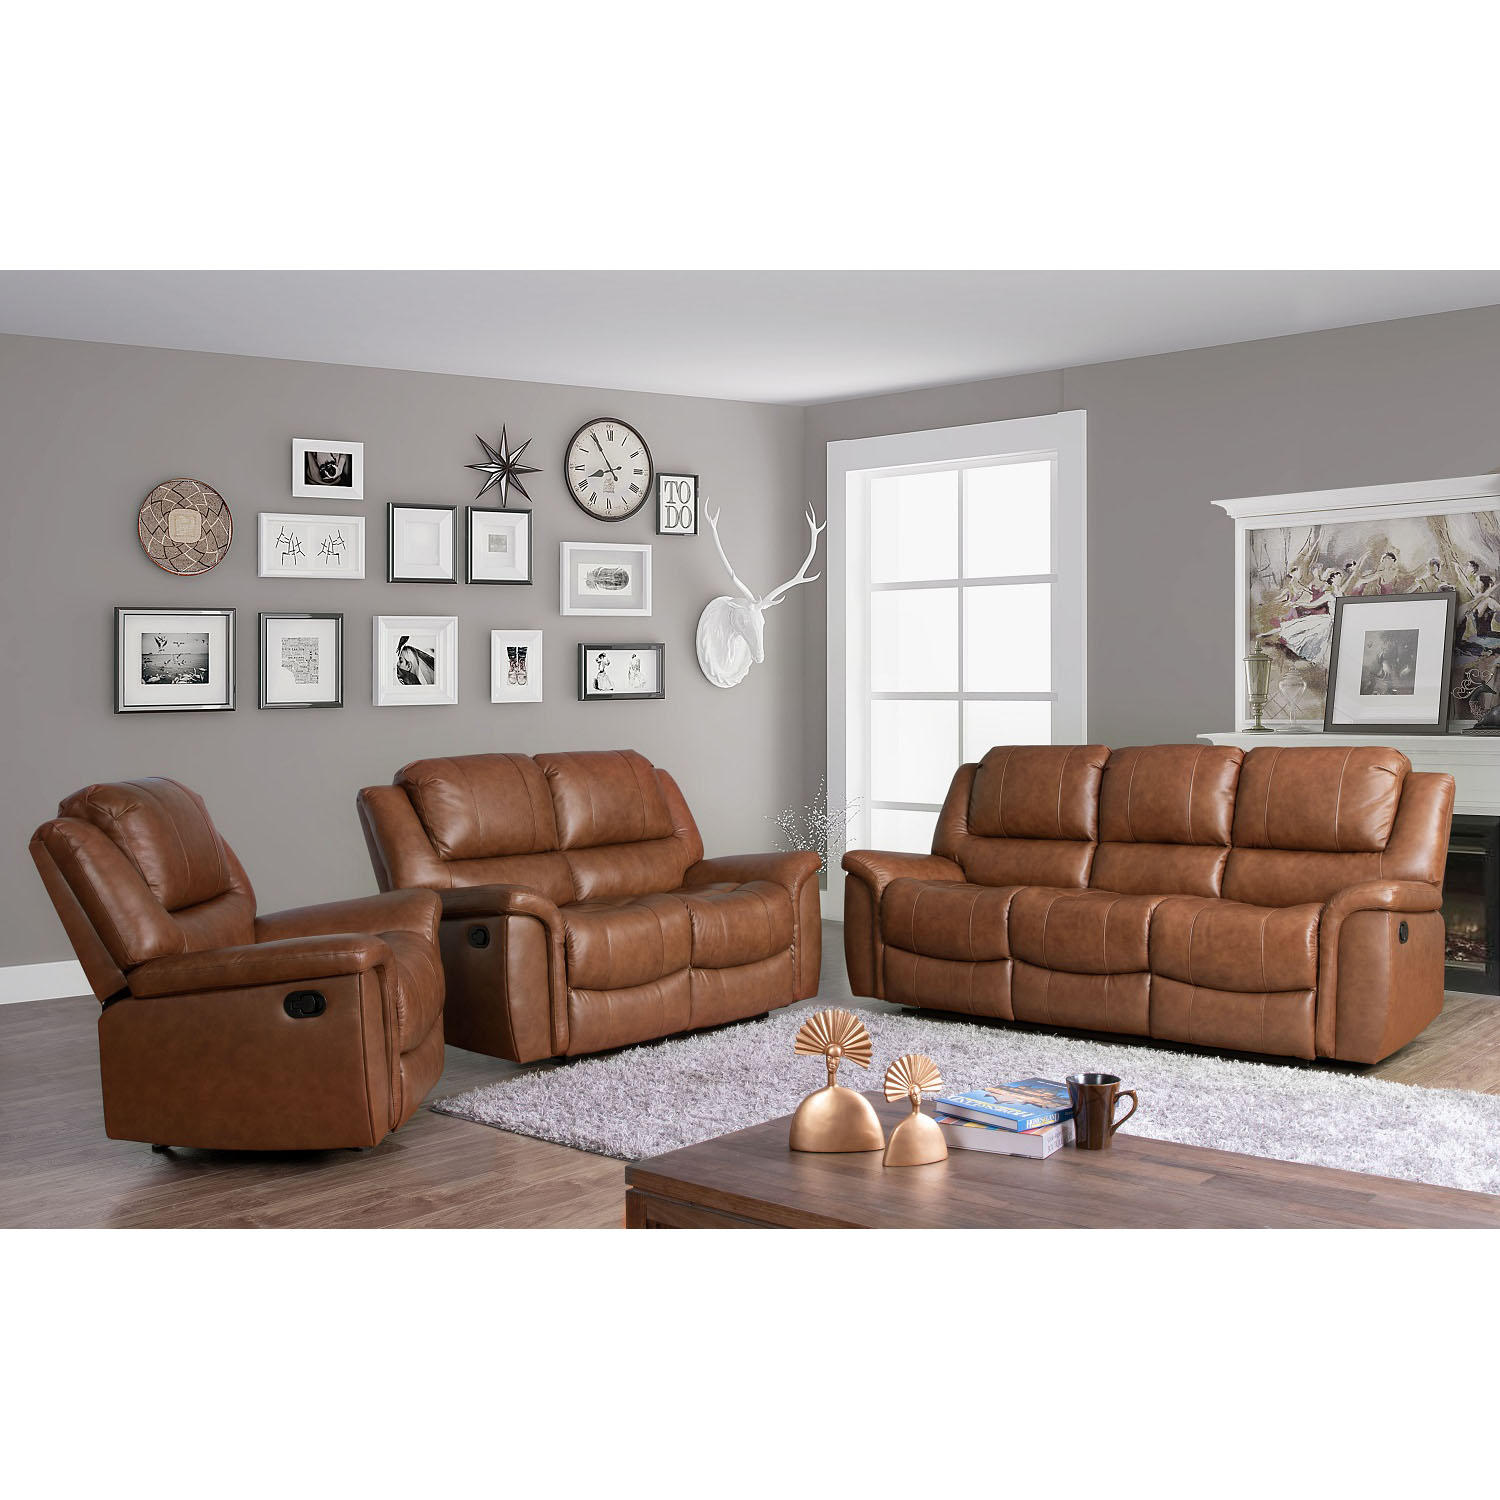 Syracuse 3 Piece Top-Grain Leather Reclining Sofa Set